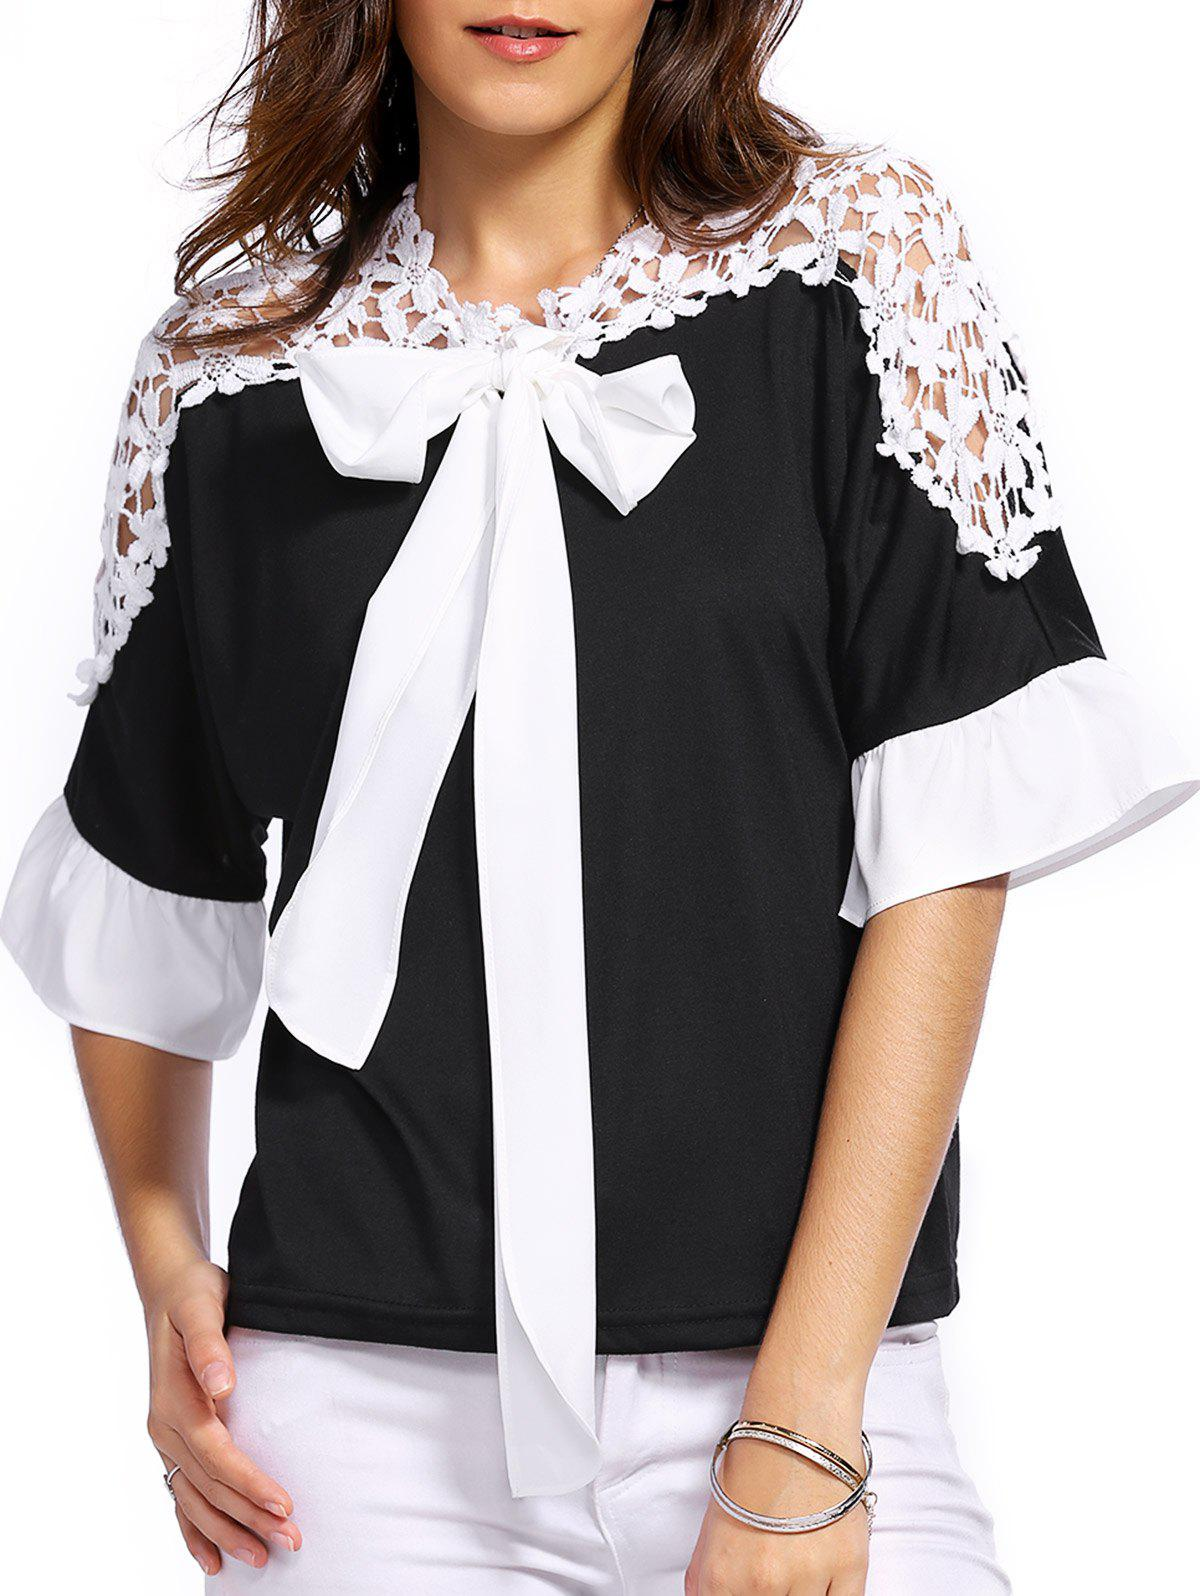 Bowknot Embellished 3/4 Sleeve Lace Splicing Blouse - WHITE/BLACK XL